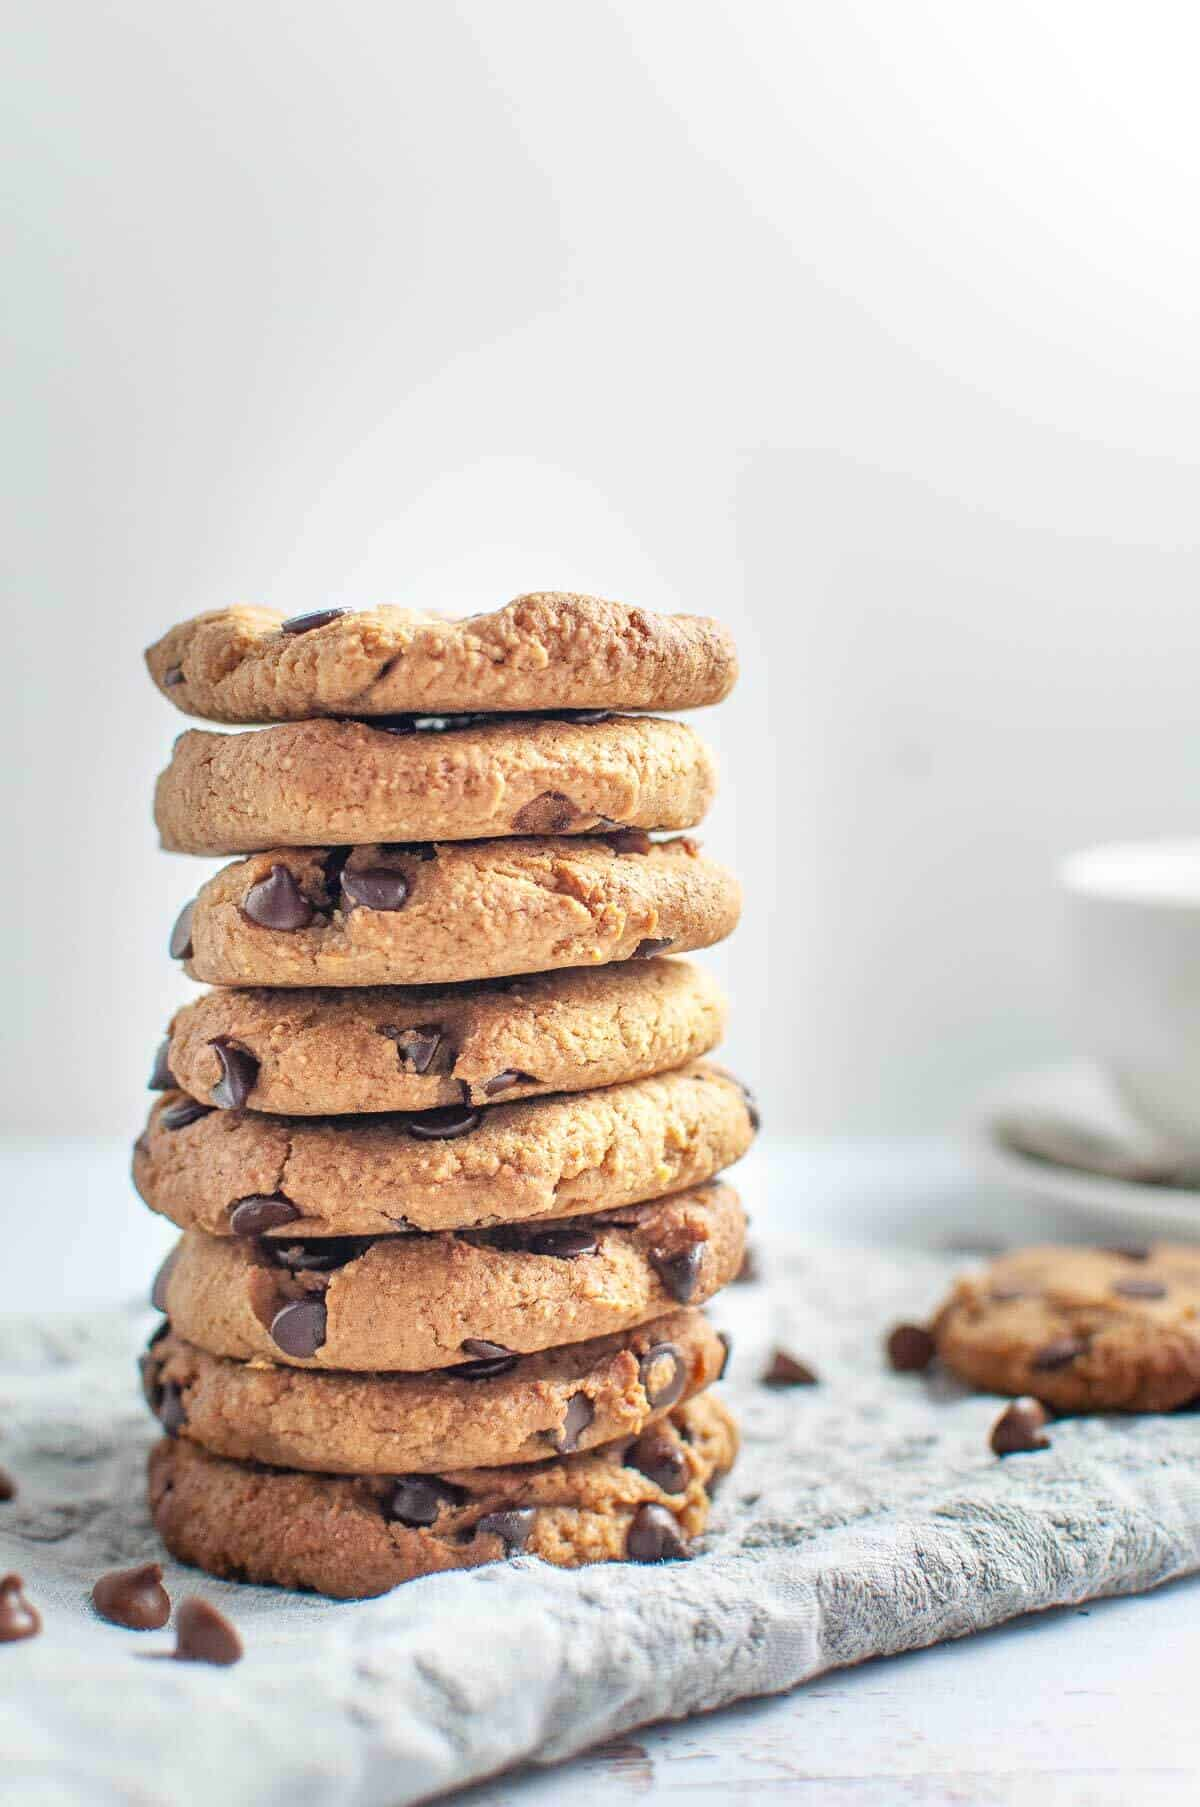 Chickpea Chocolate Chip Cookies stacked on a napkin